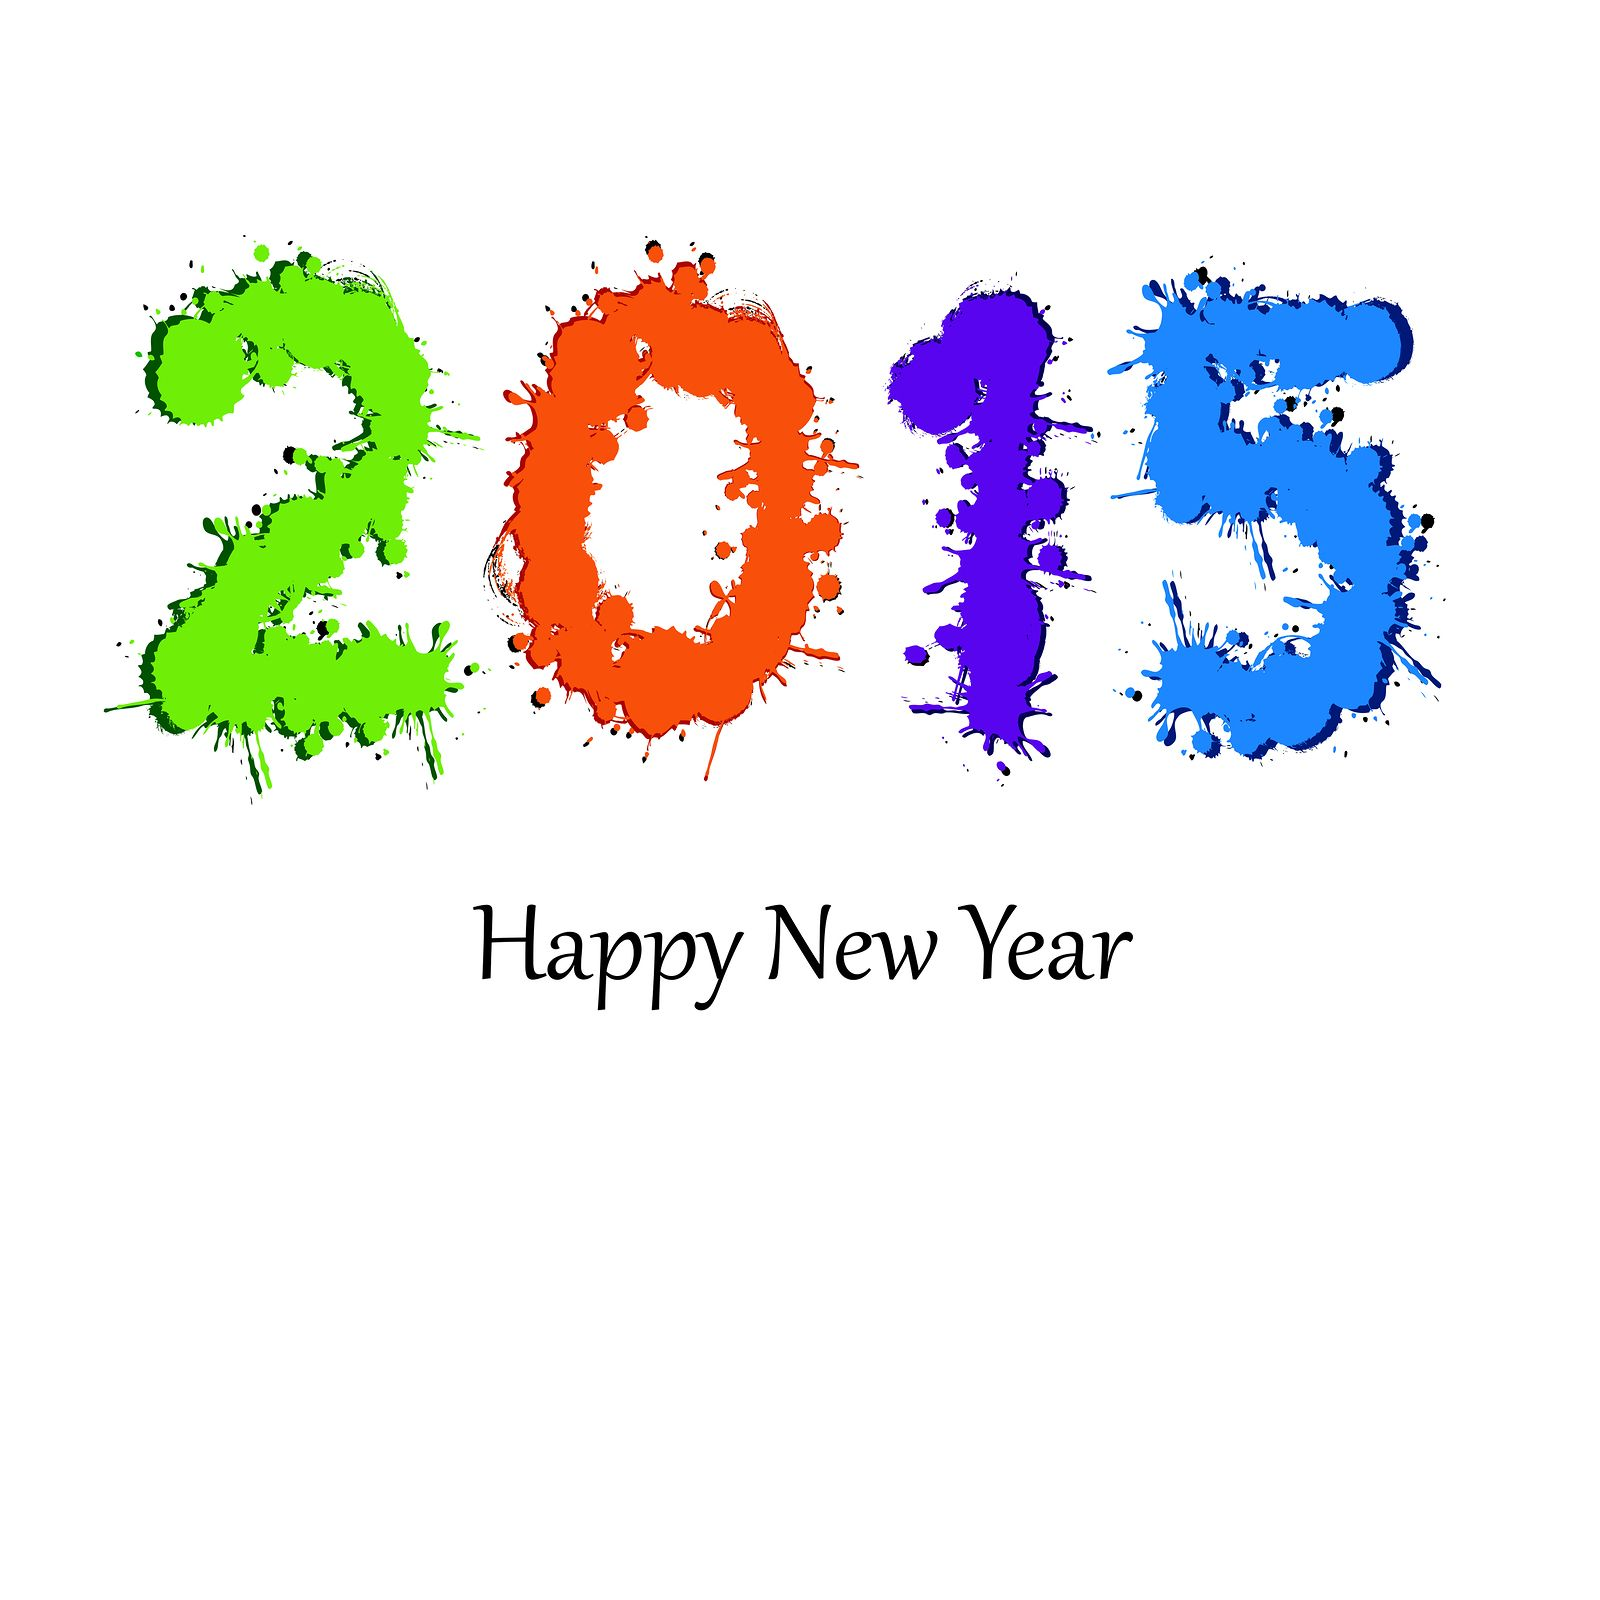 Happy New Year from all of us at myKidsy.com